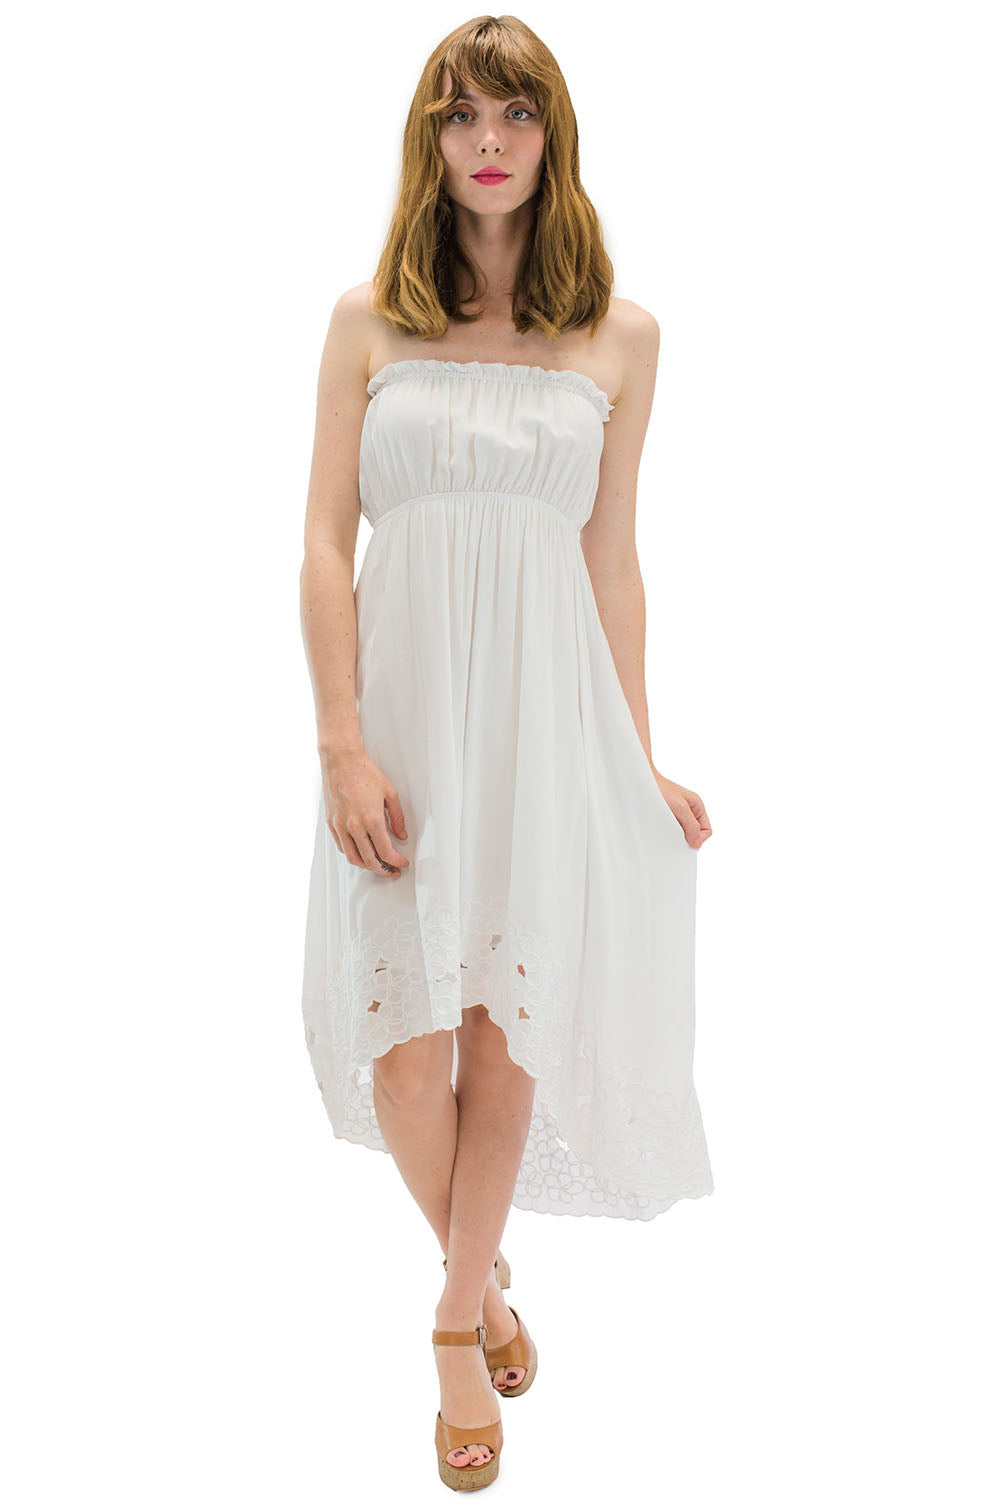 Waikiki Moon Dress White